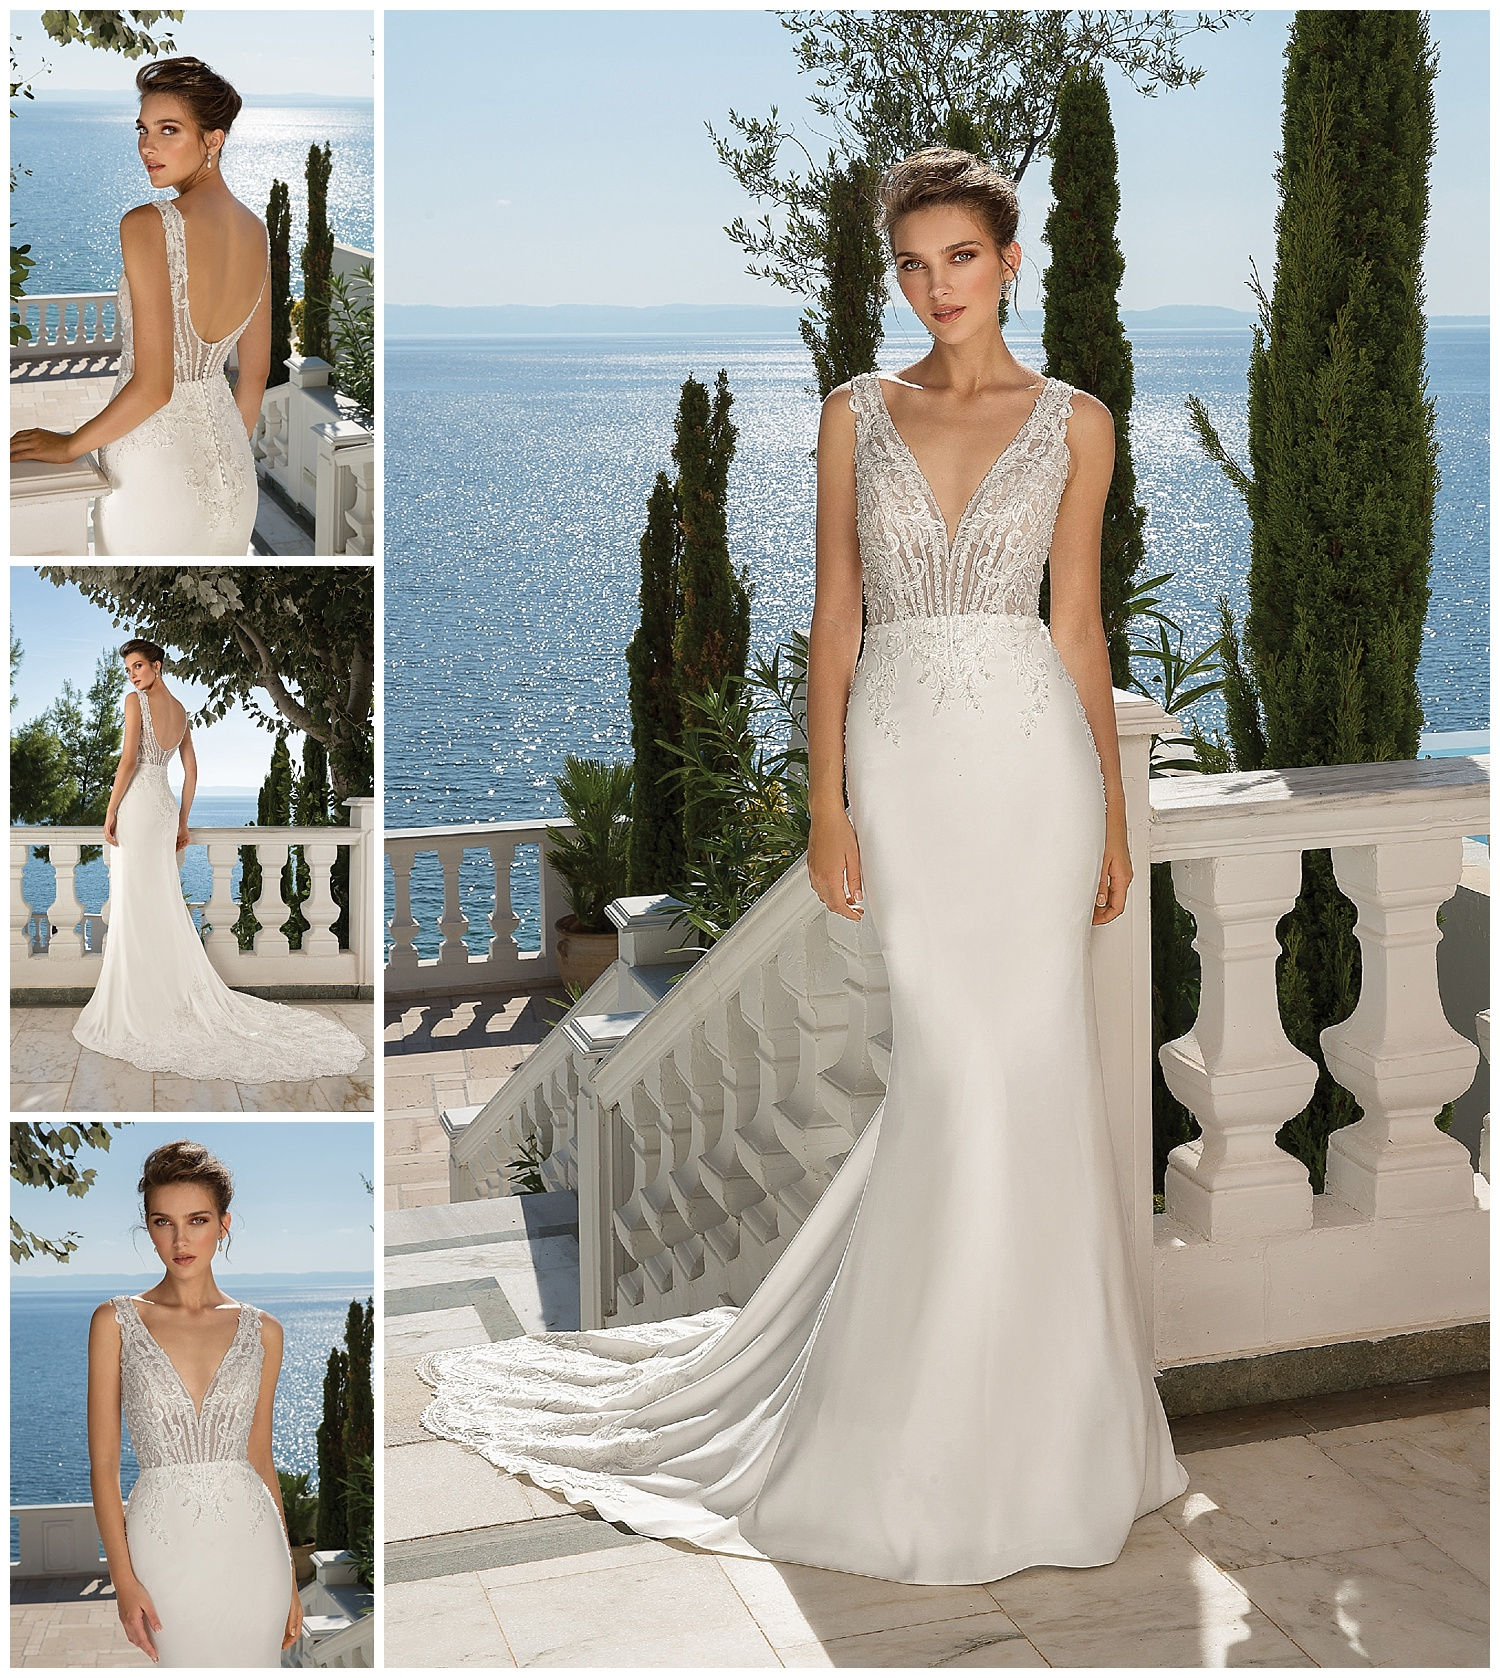 justin-alexander-88097-fitted-crepe-dress-epiphany-boutique-carmel-california.jpg